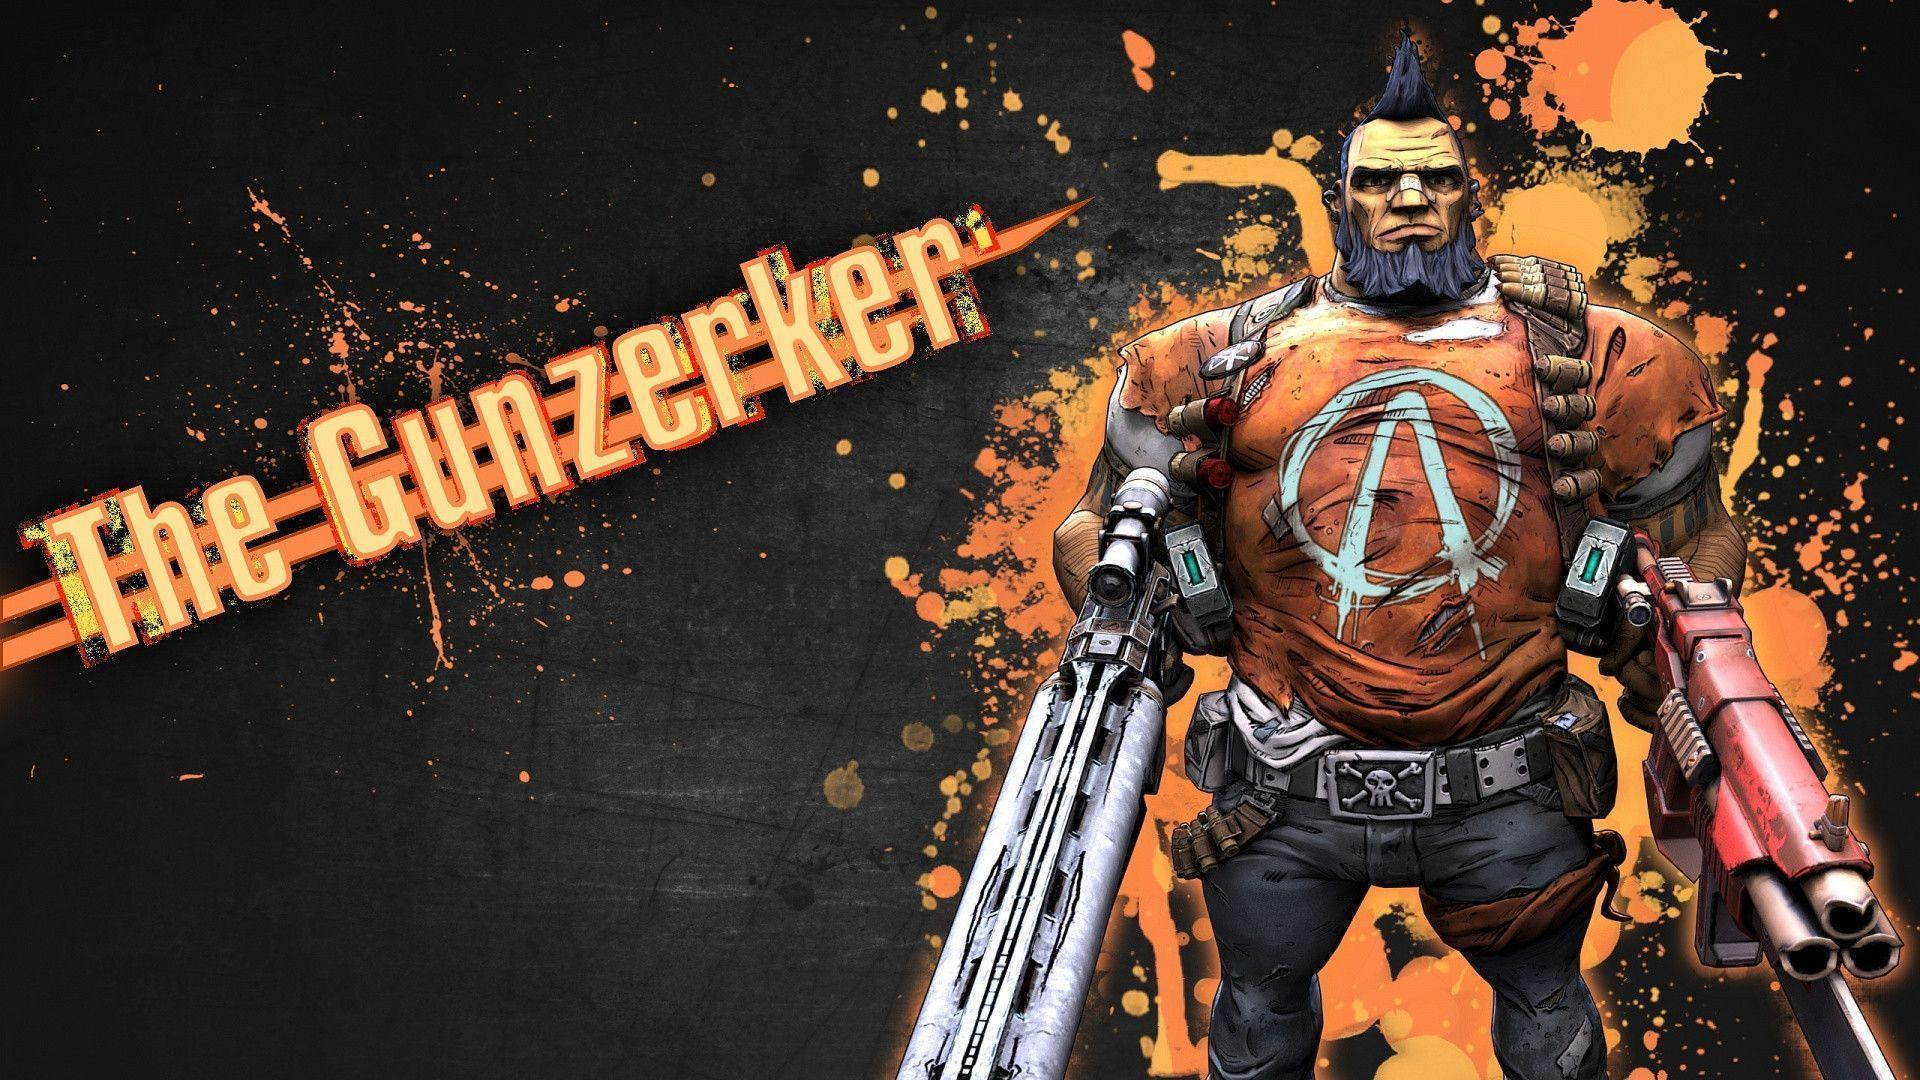 Borderlands 2 Class Wallpaper: Borderlands 2 Wallpapers 1920x1080